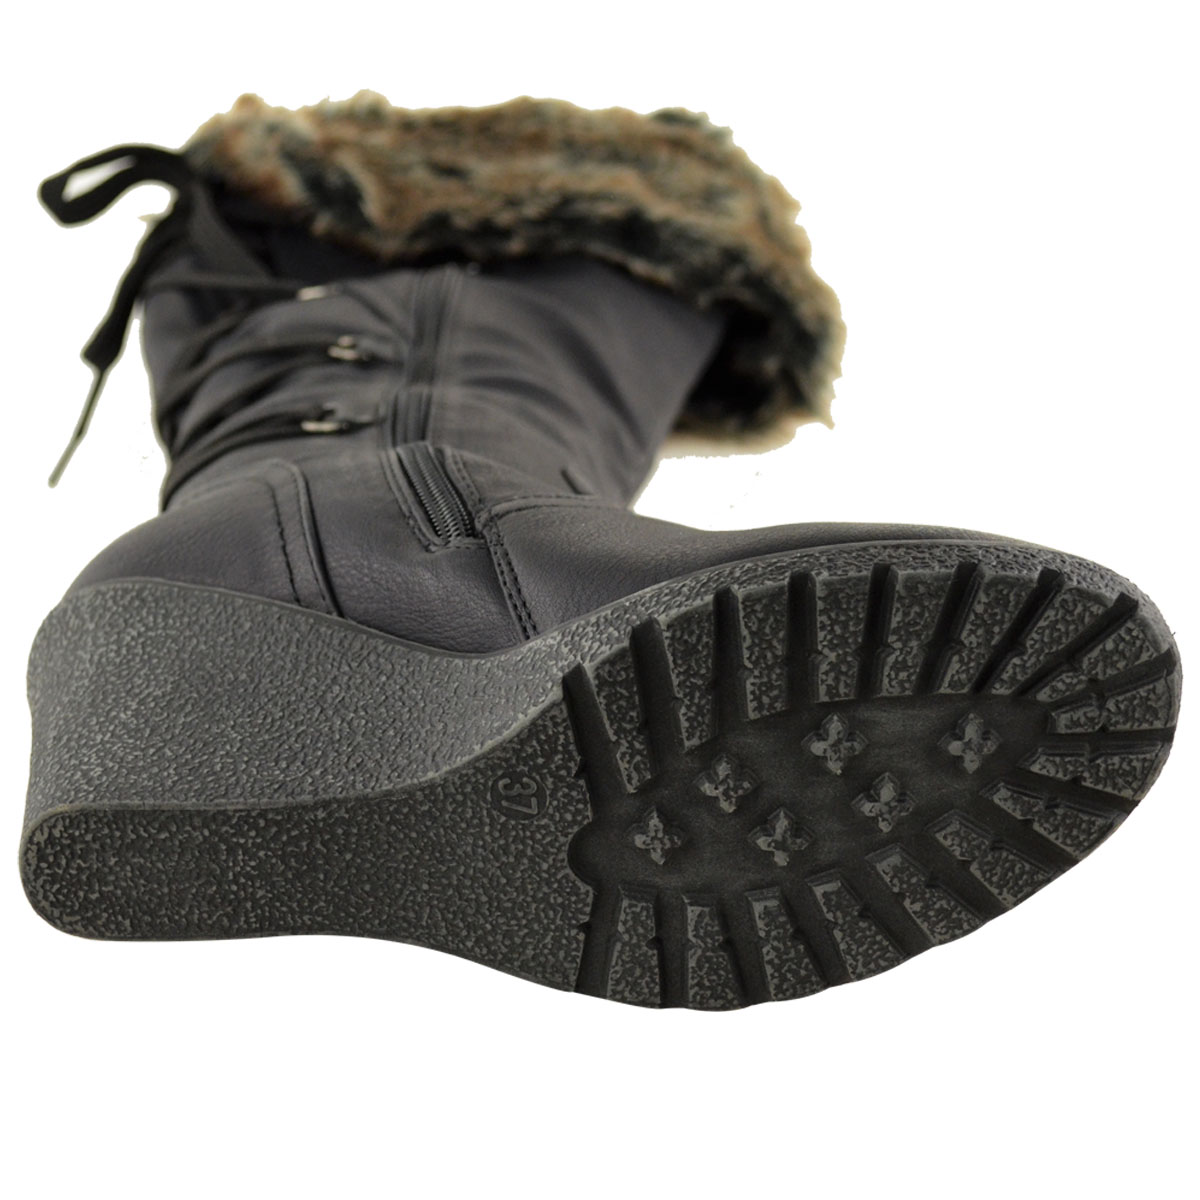 WOMENS-LADIES-MID-WEDGE-HIGH-HEEL-FUR-LINED-WARM-WINTER-KNEE-CALF-ZIP-BOOTS-SIZE thumbnail 15